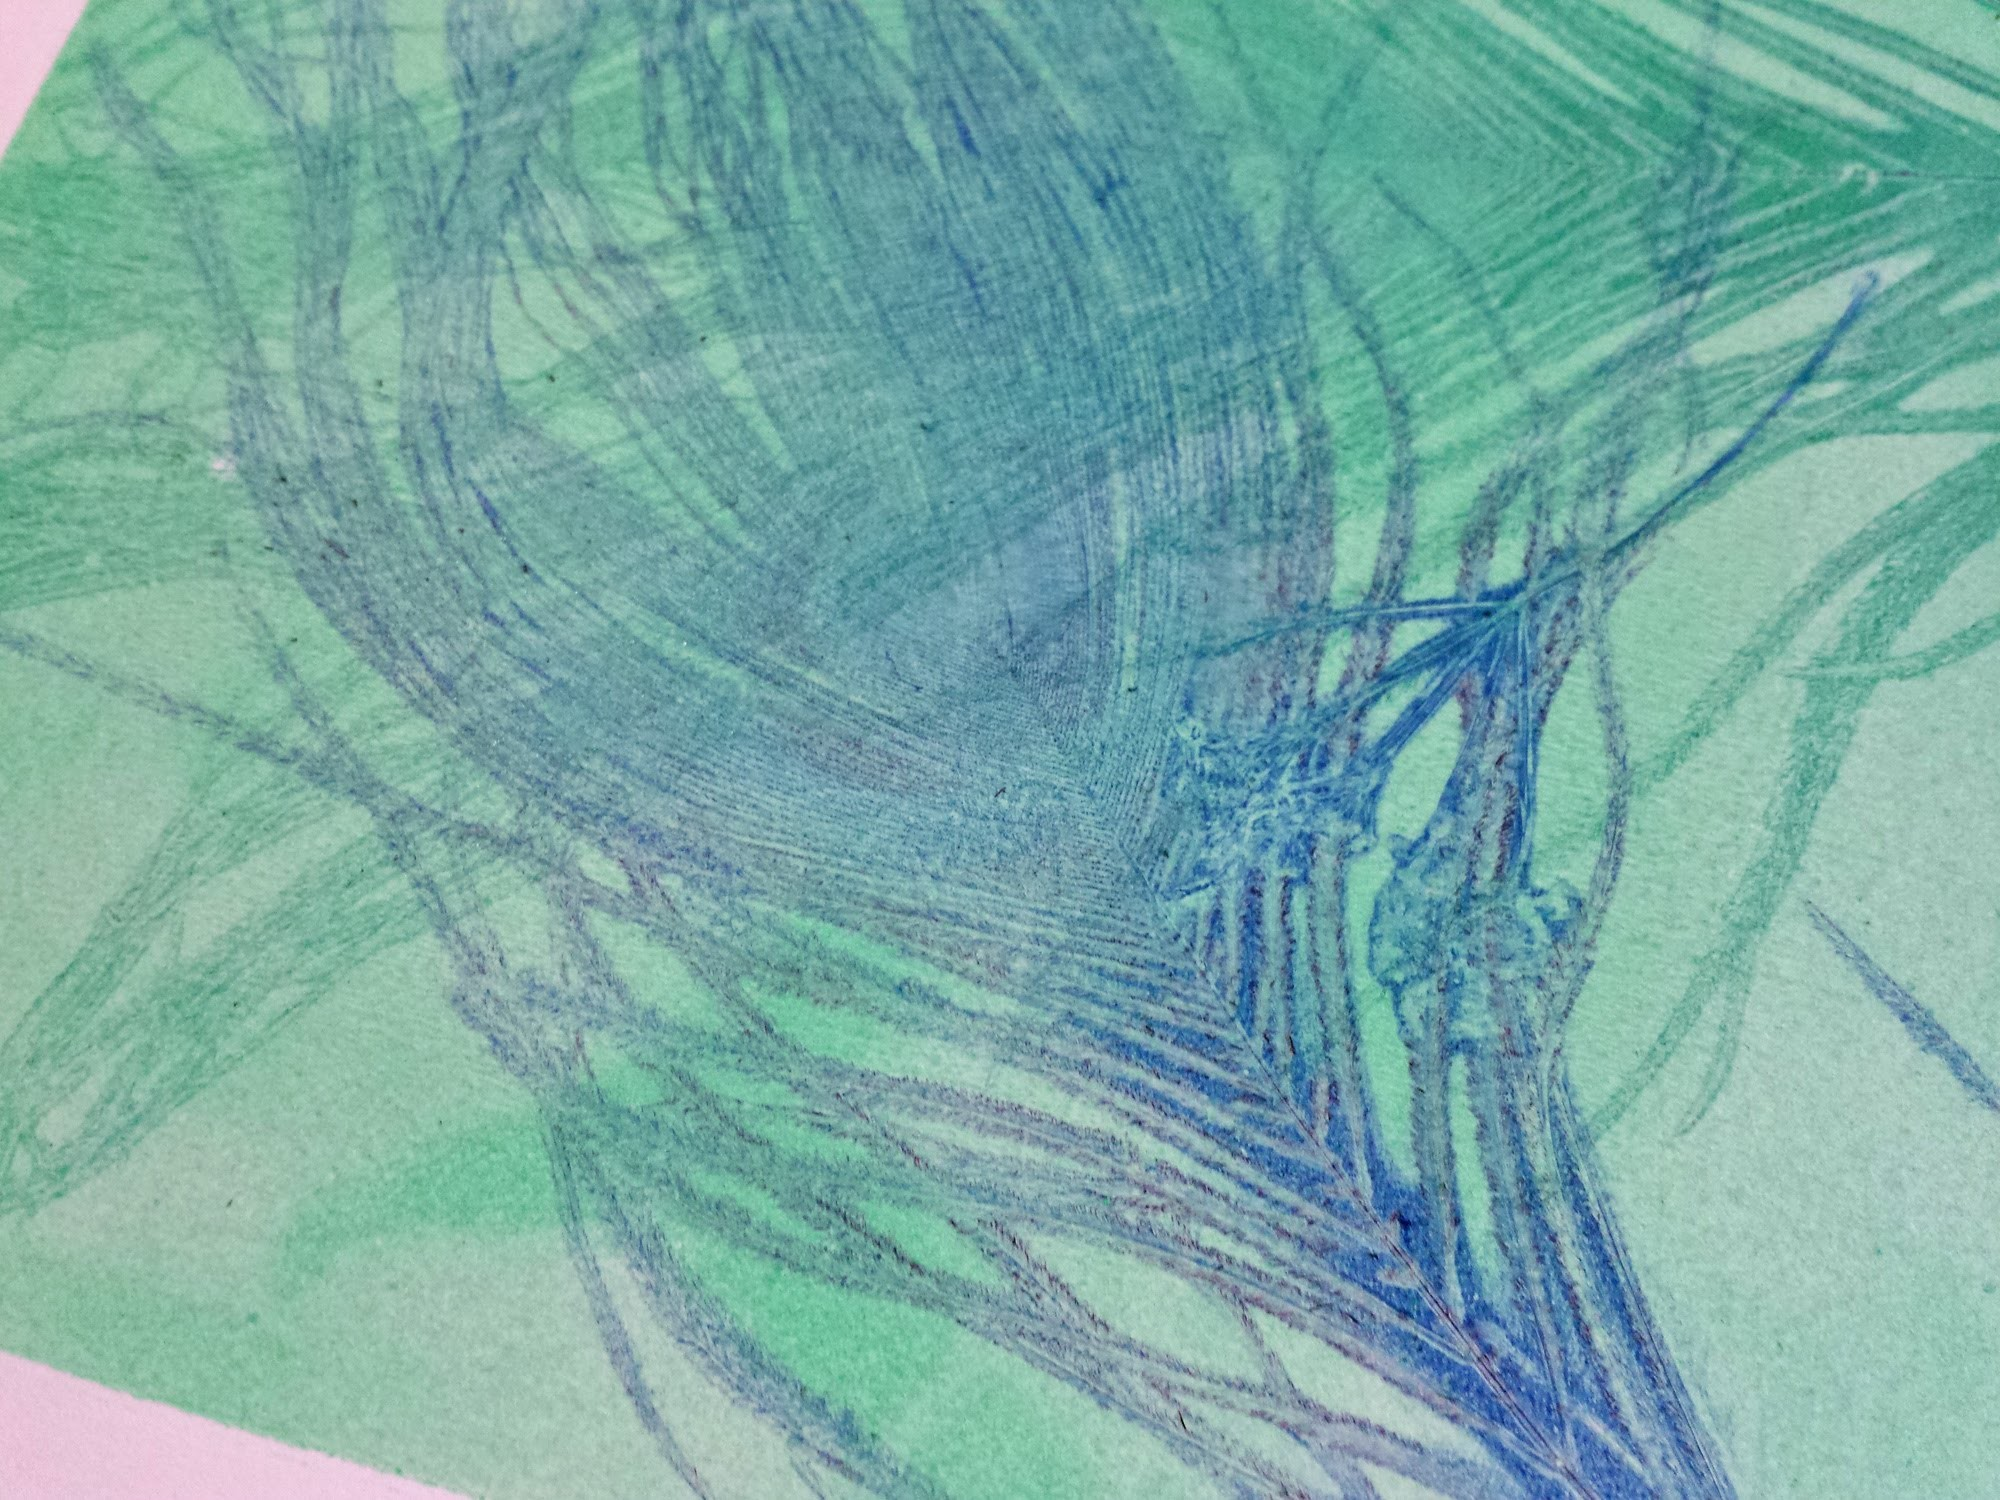 Gelli printing with plants and feathers